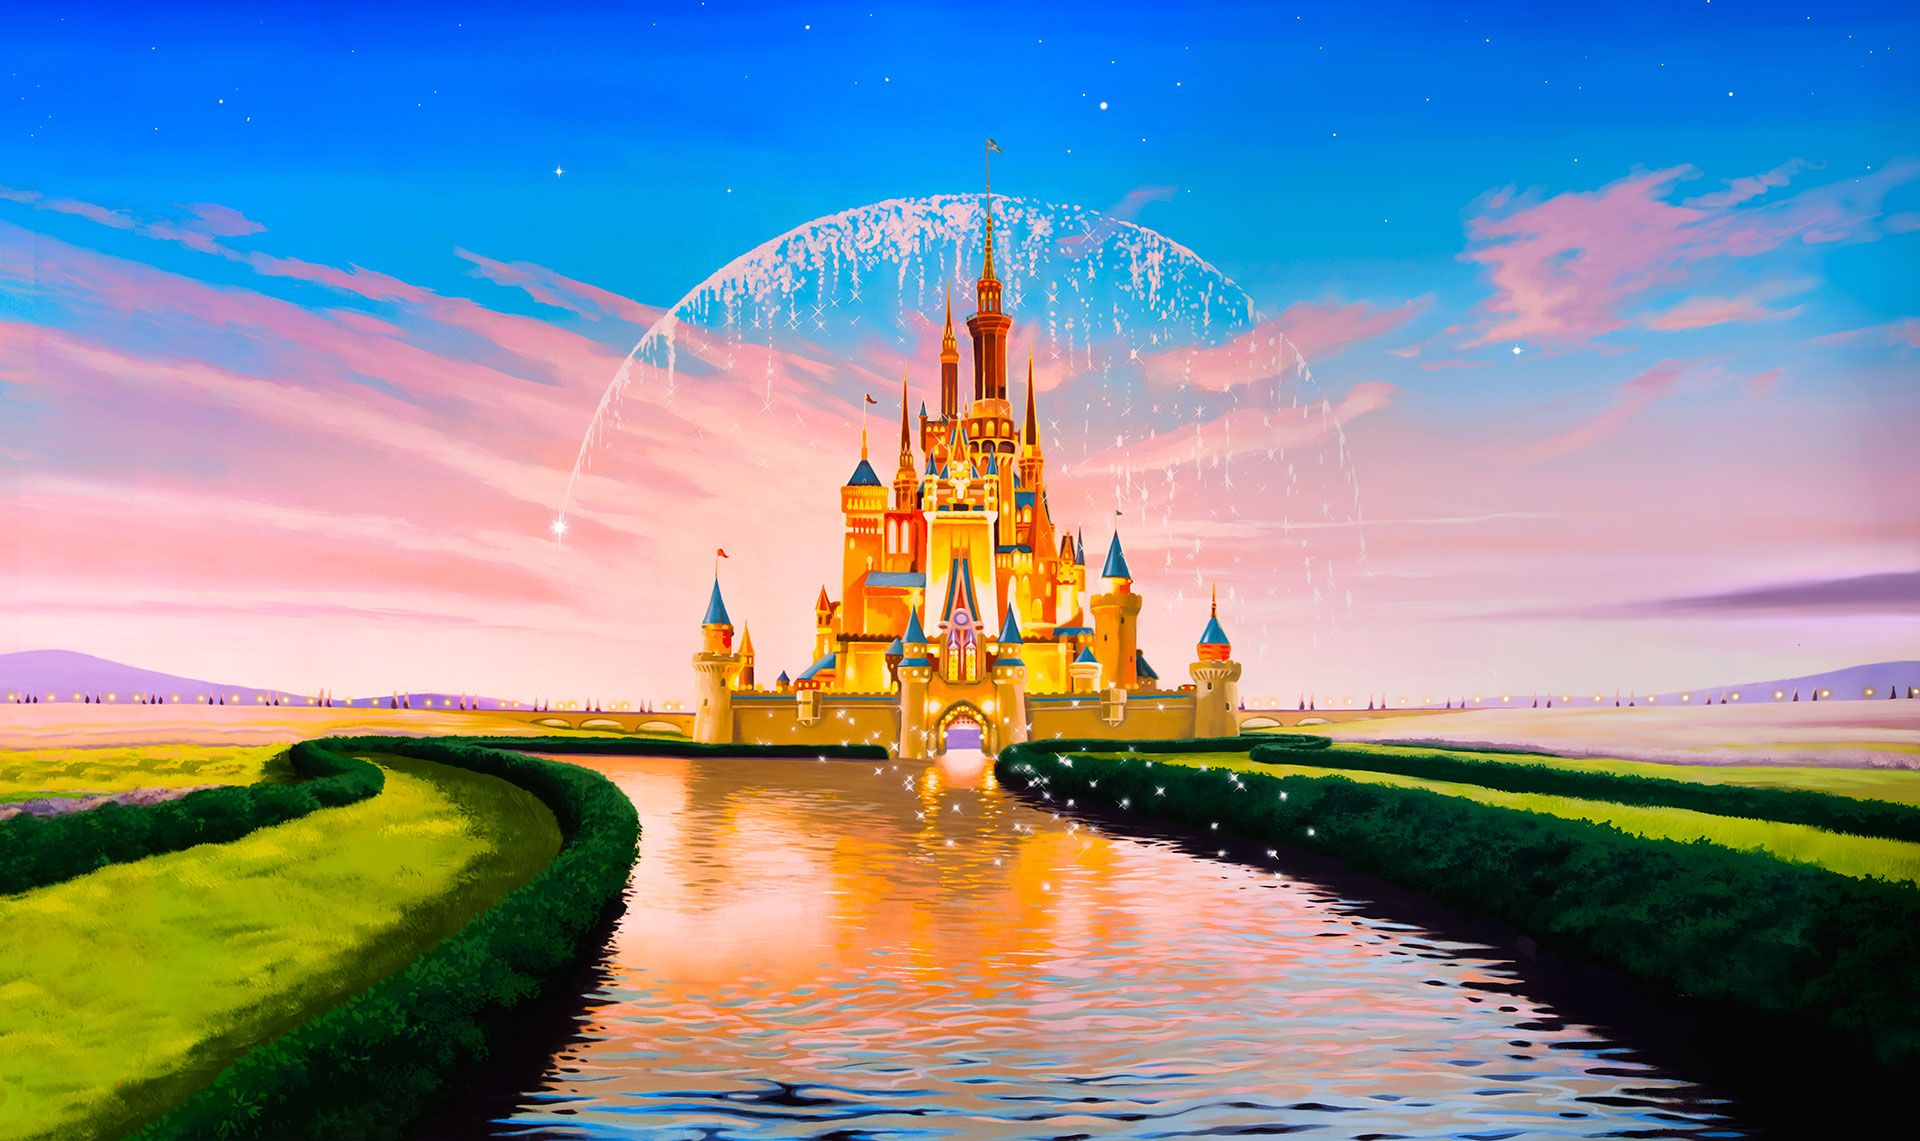 Anime Wallpaper: Disney Castle Desktop Wallpapers HD Resolution ... | disney in 2019 | Disney ...